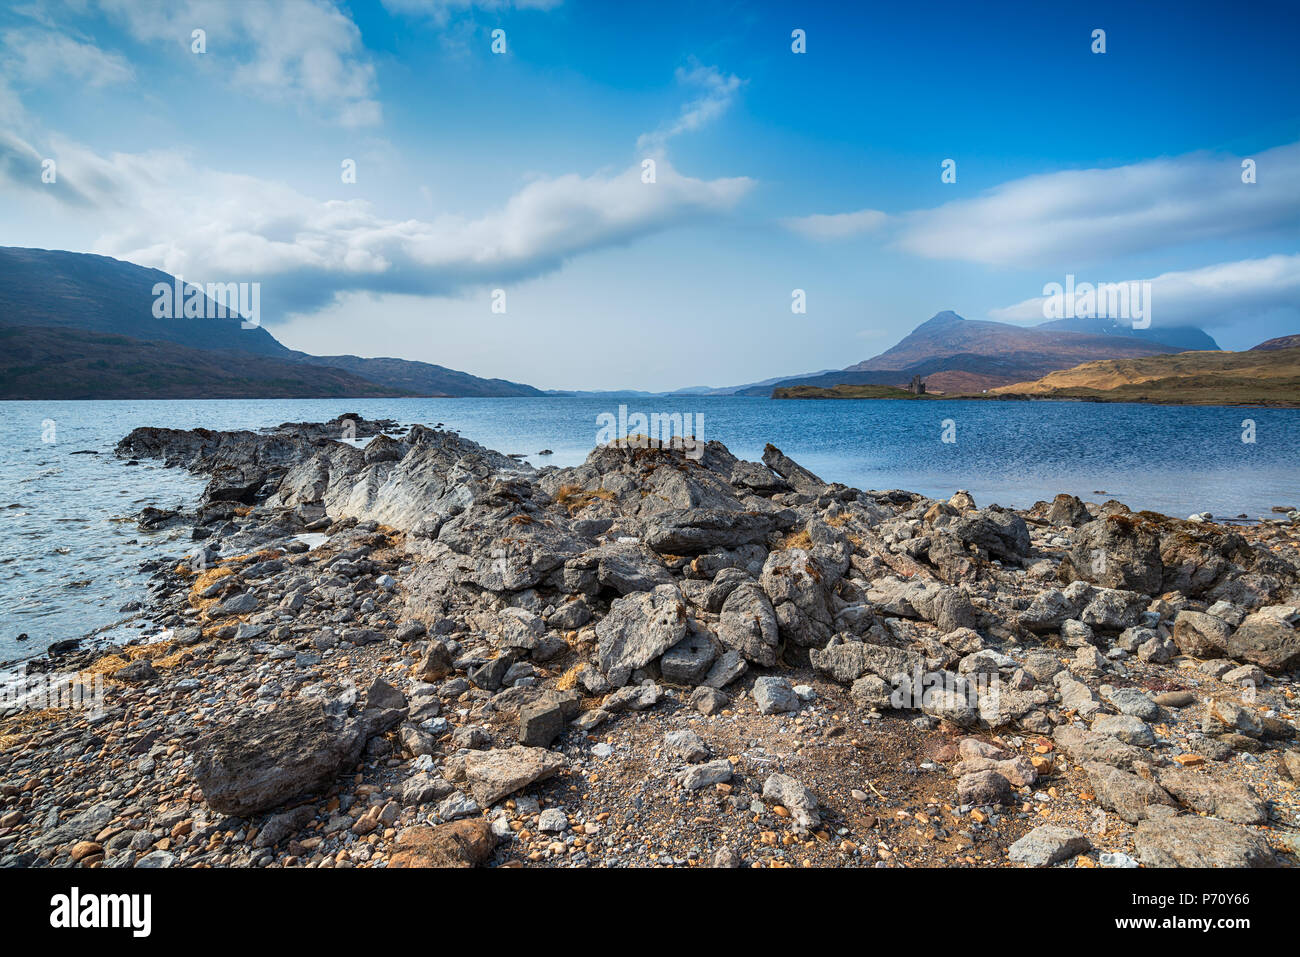 Loch Assynt with Ardvreck Castle in the far distance - Stock Image